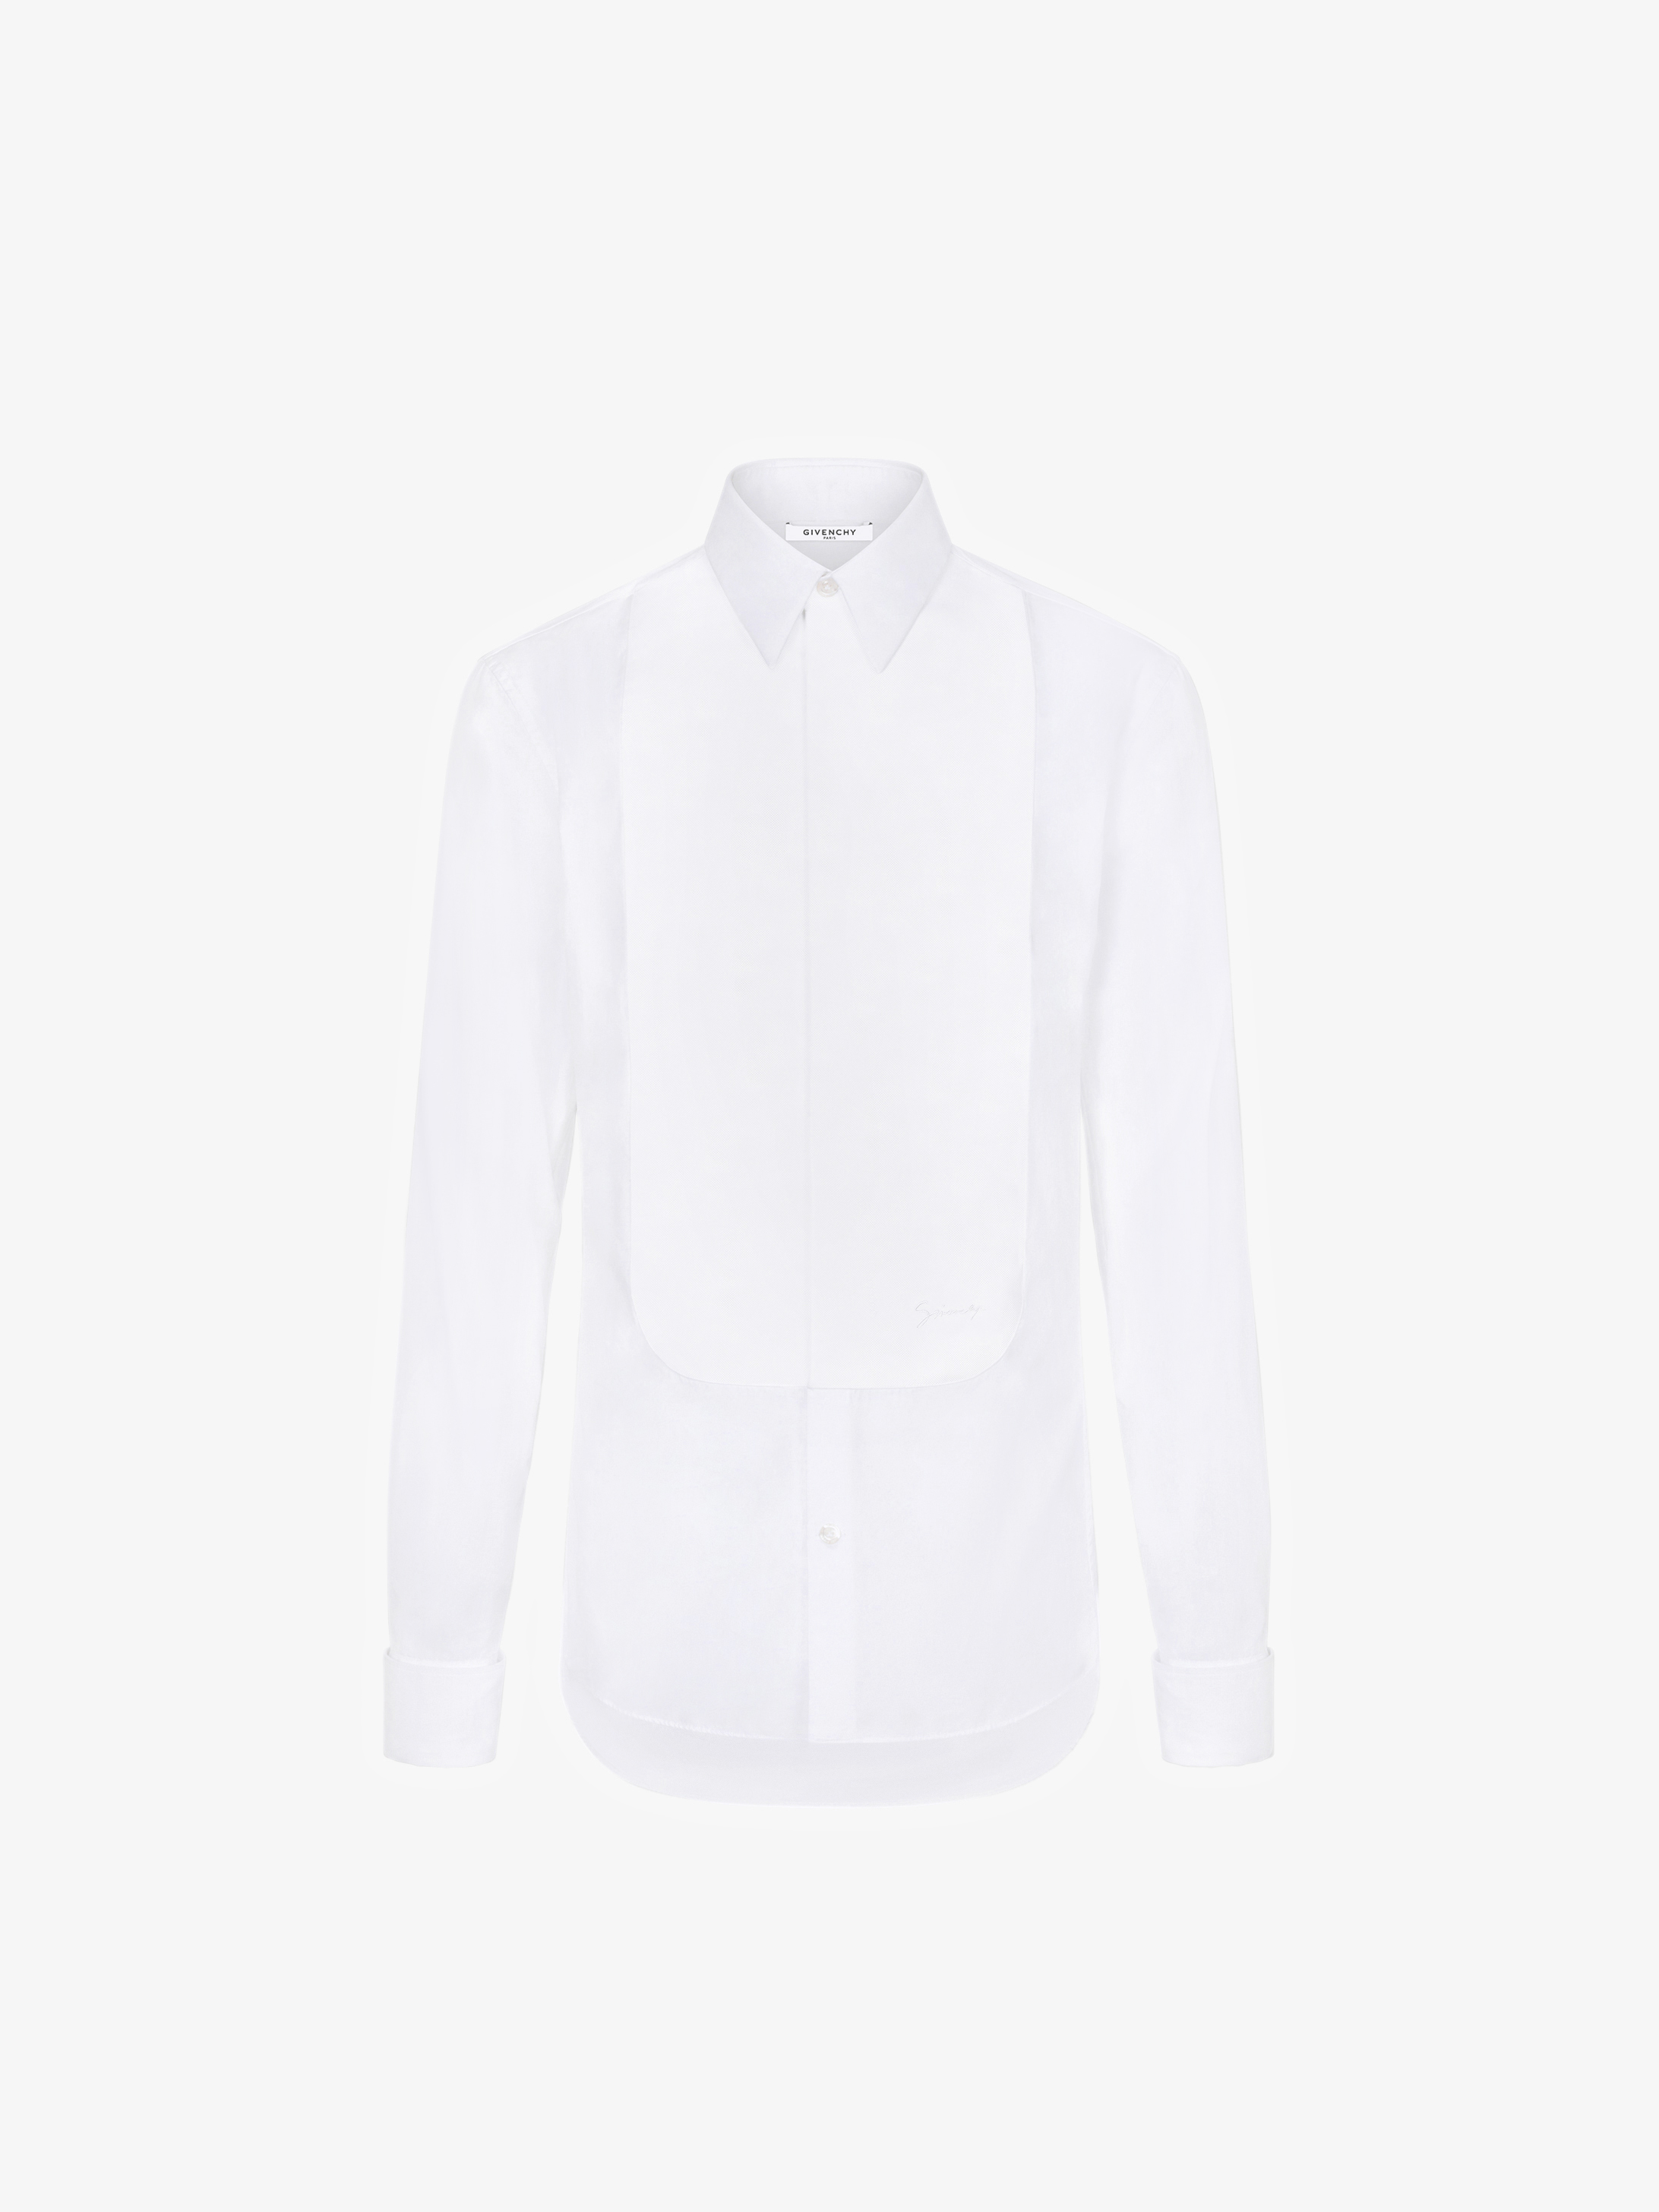 GIVENCHY slim fit embroidered plastron shirt